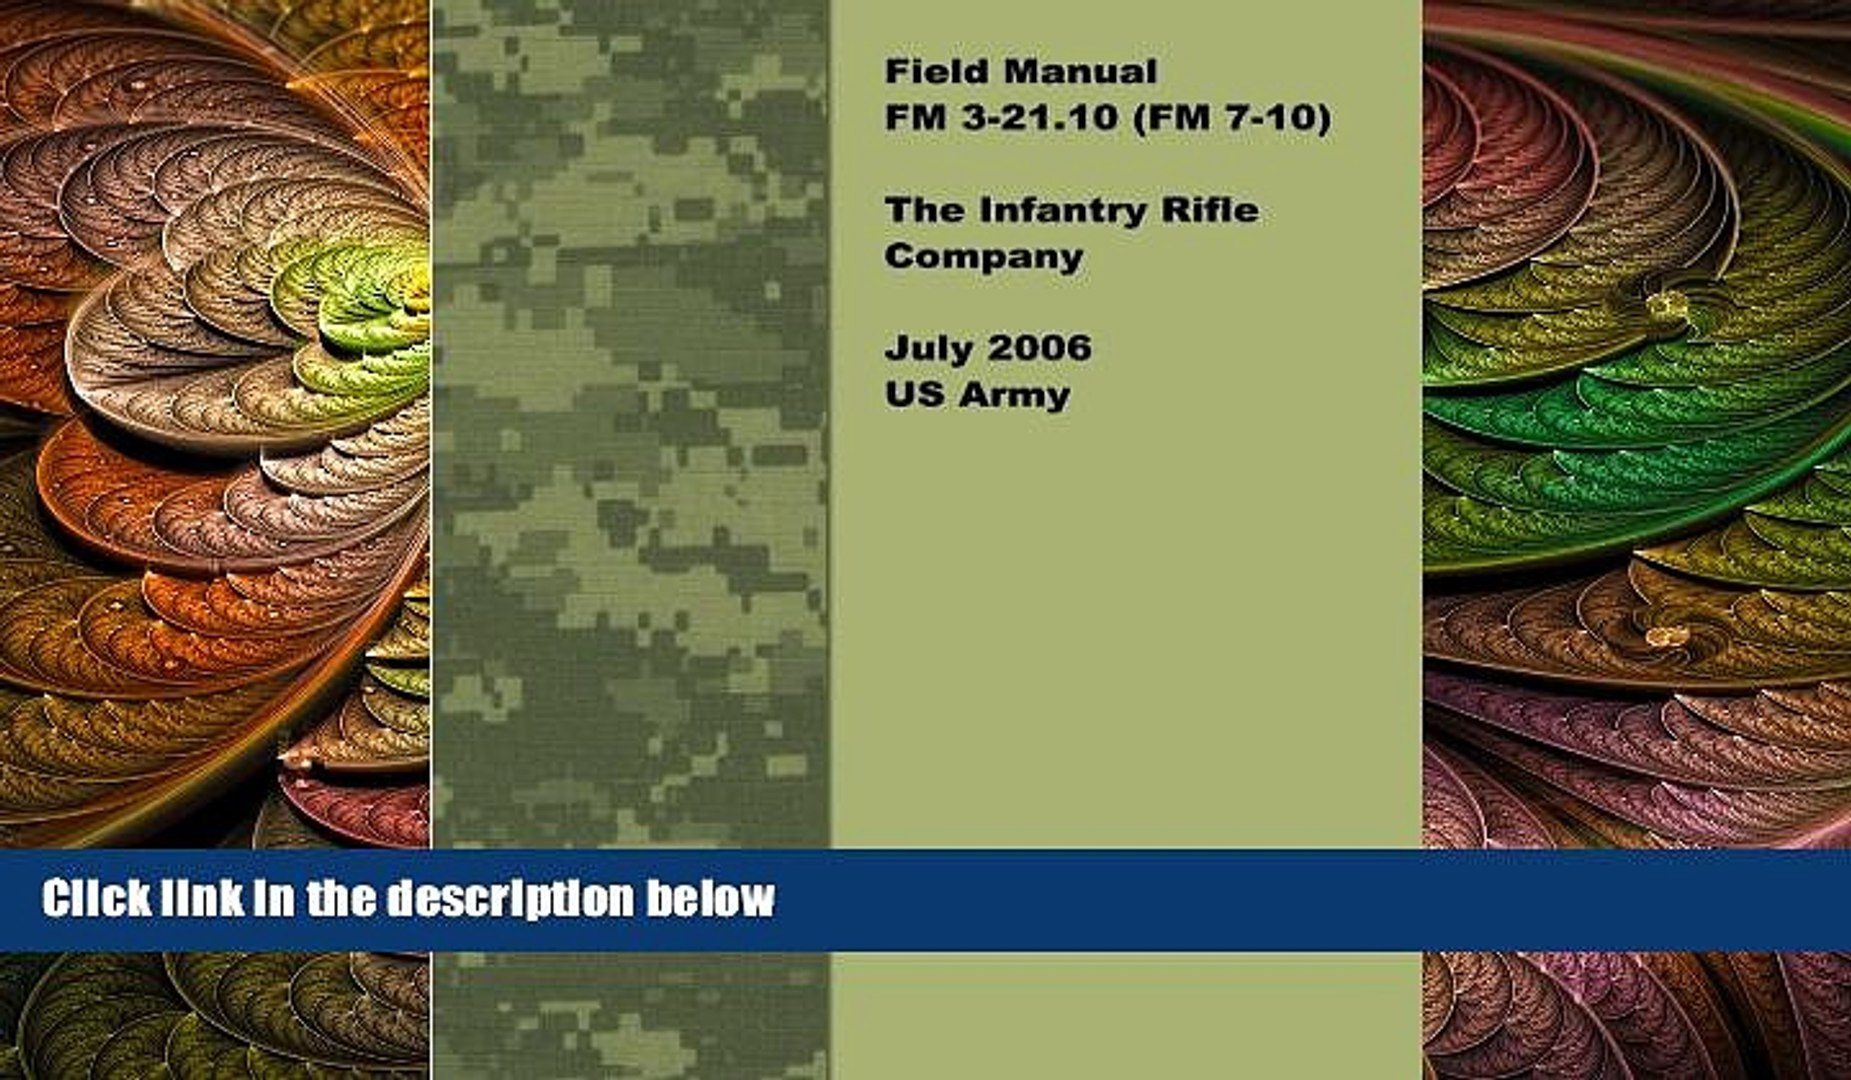 FAVORITE BOOK  Field Manual FM 3-21.10 (FM 7-10) The Infantry Rifle Company July 2006 US Army